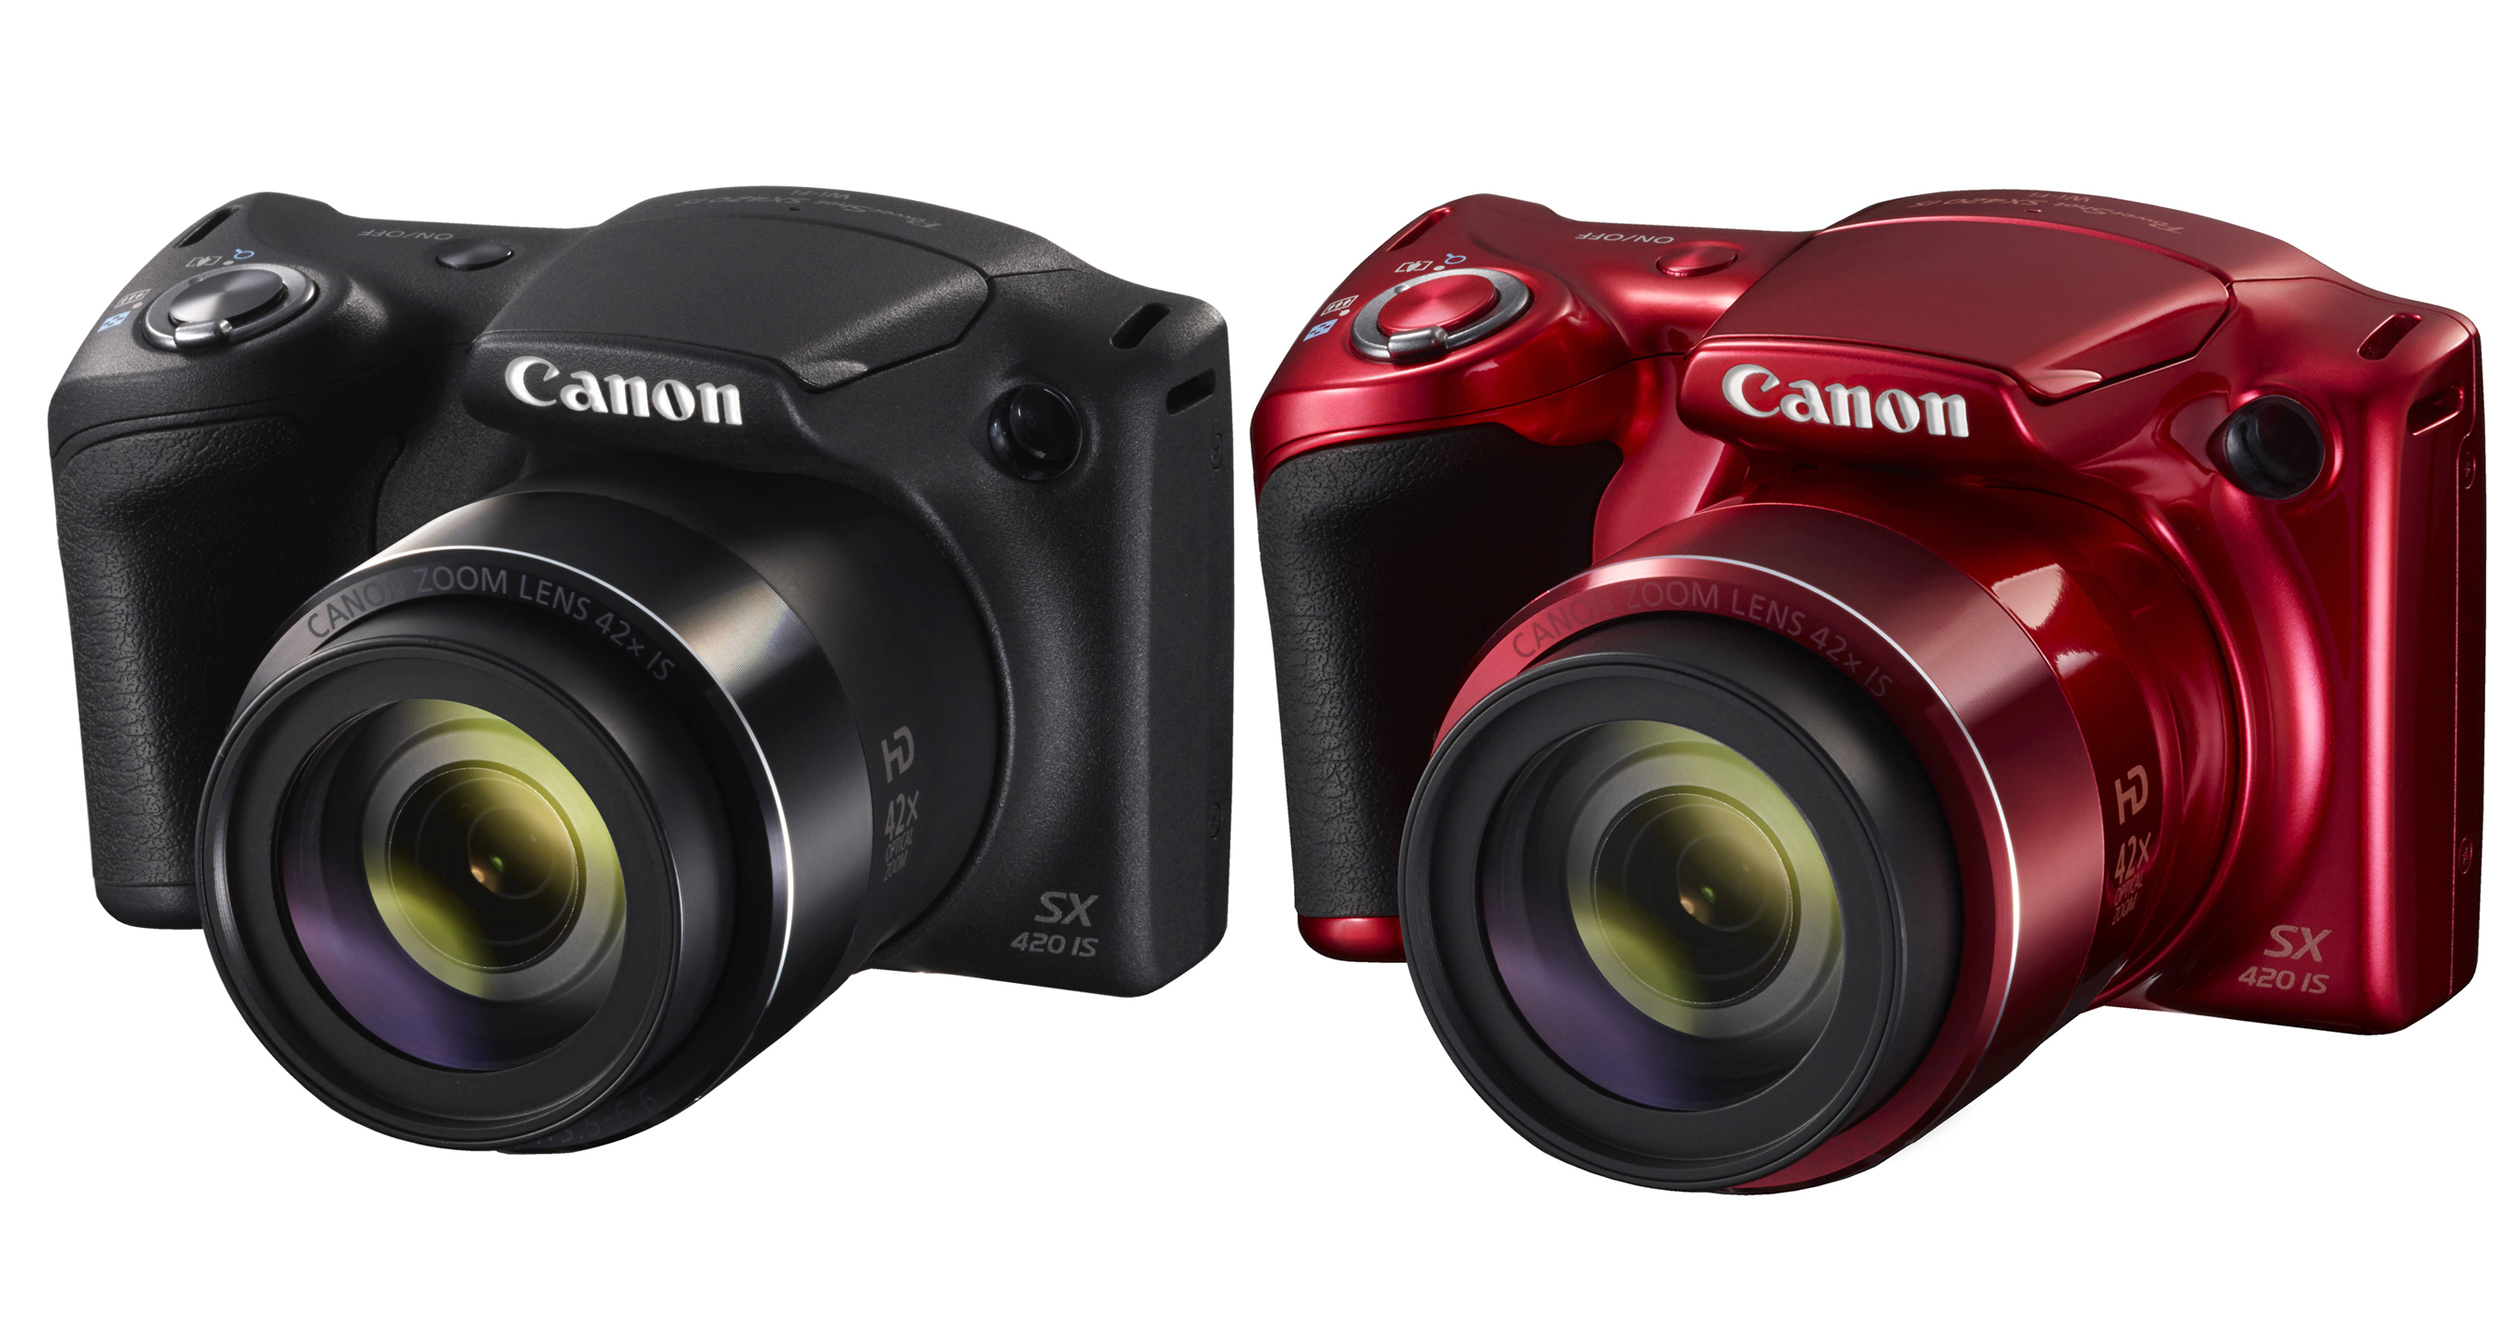 Canon Powershot SX420 IS: Μοντέρνος σχεδιασμός και ευελιξία